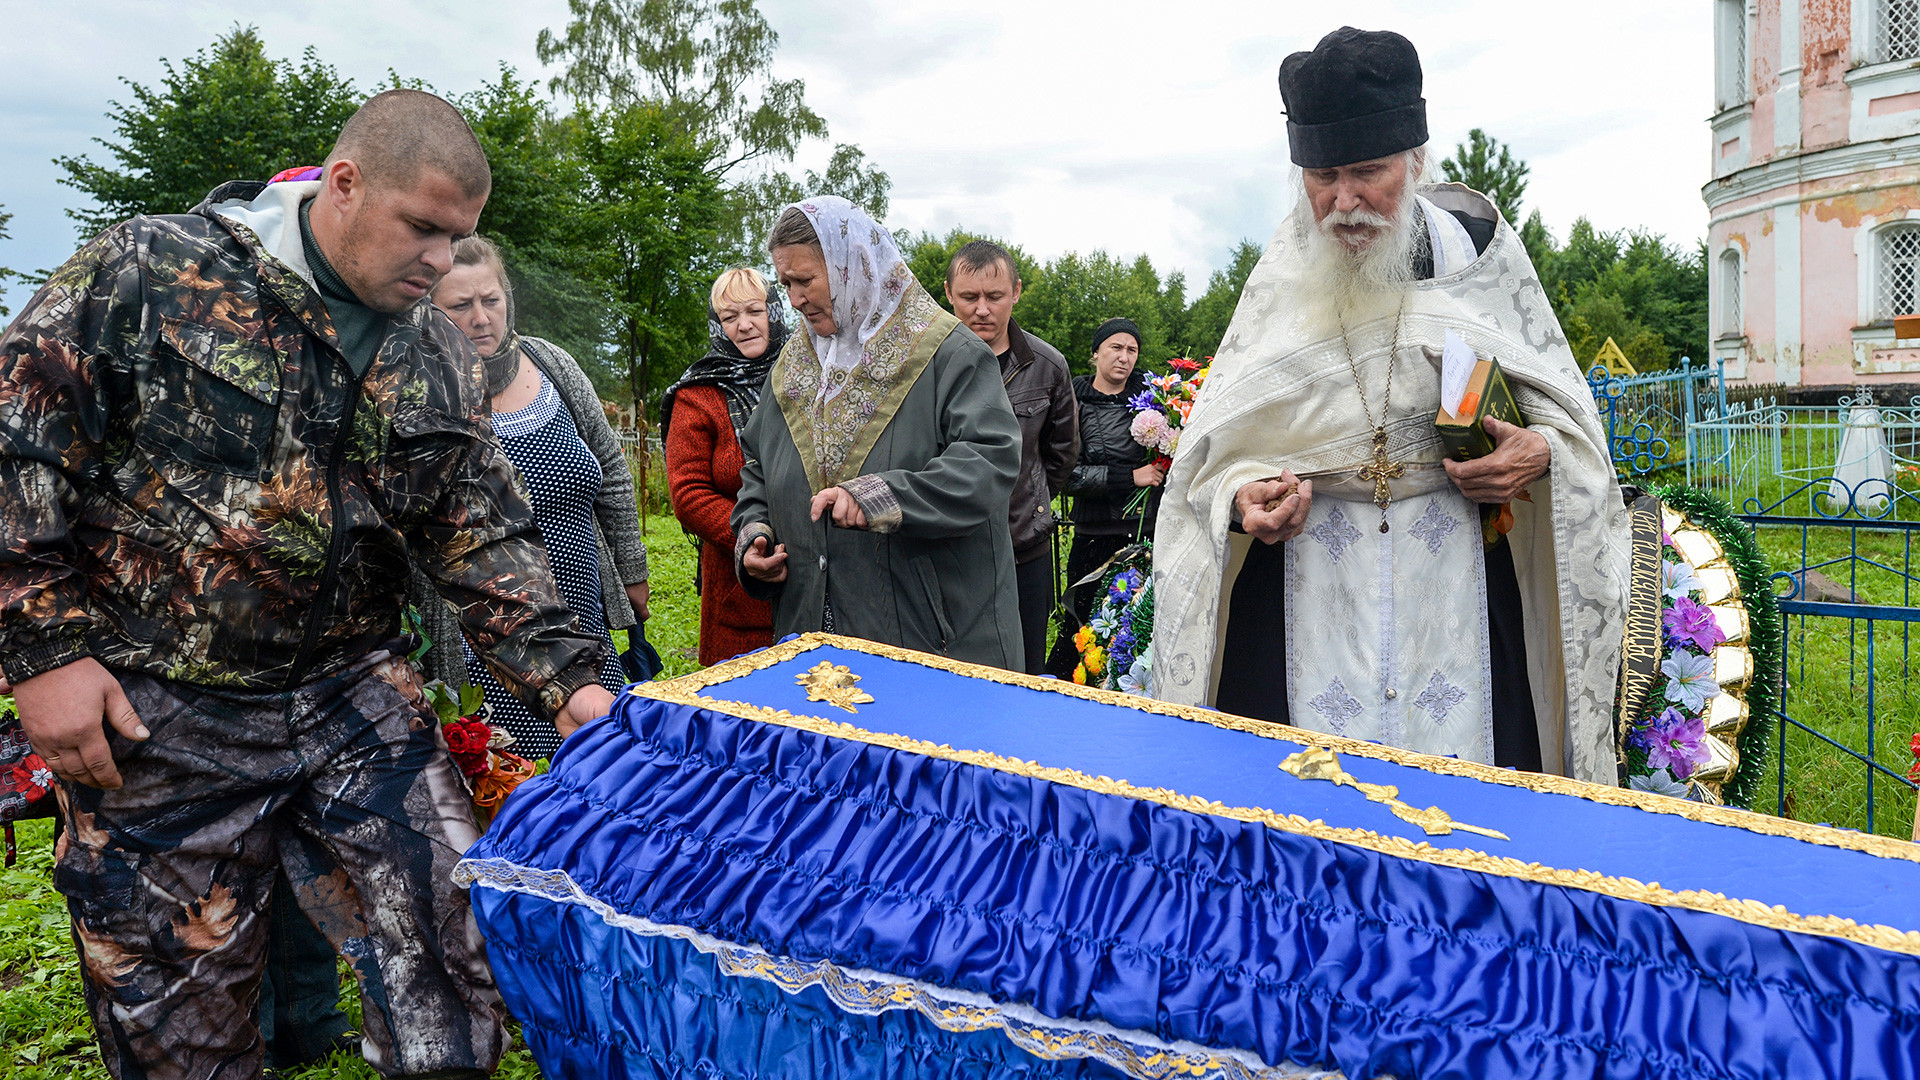 Father Sergiy, a priest and presbyter of St. Flor and St. Lavr Church in Florovskoye, Yaroslavl Region, during a funeral service at the cemetery.